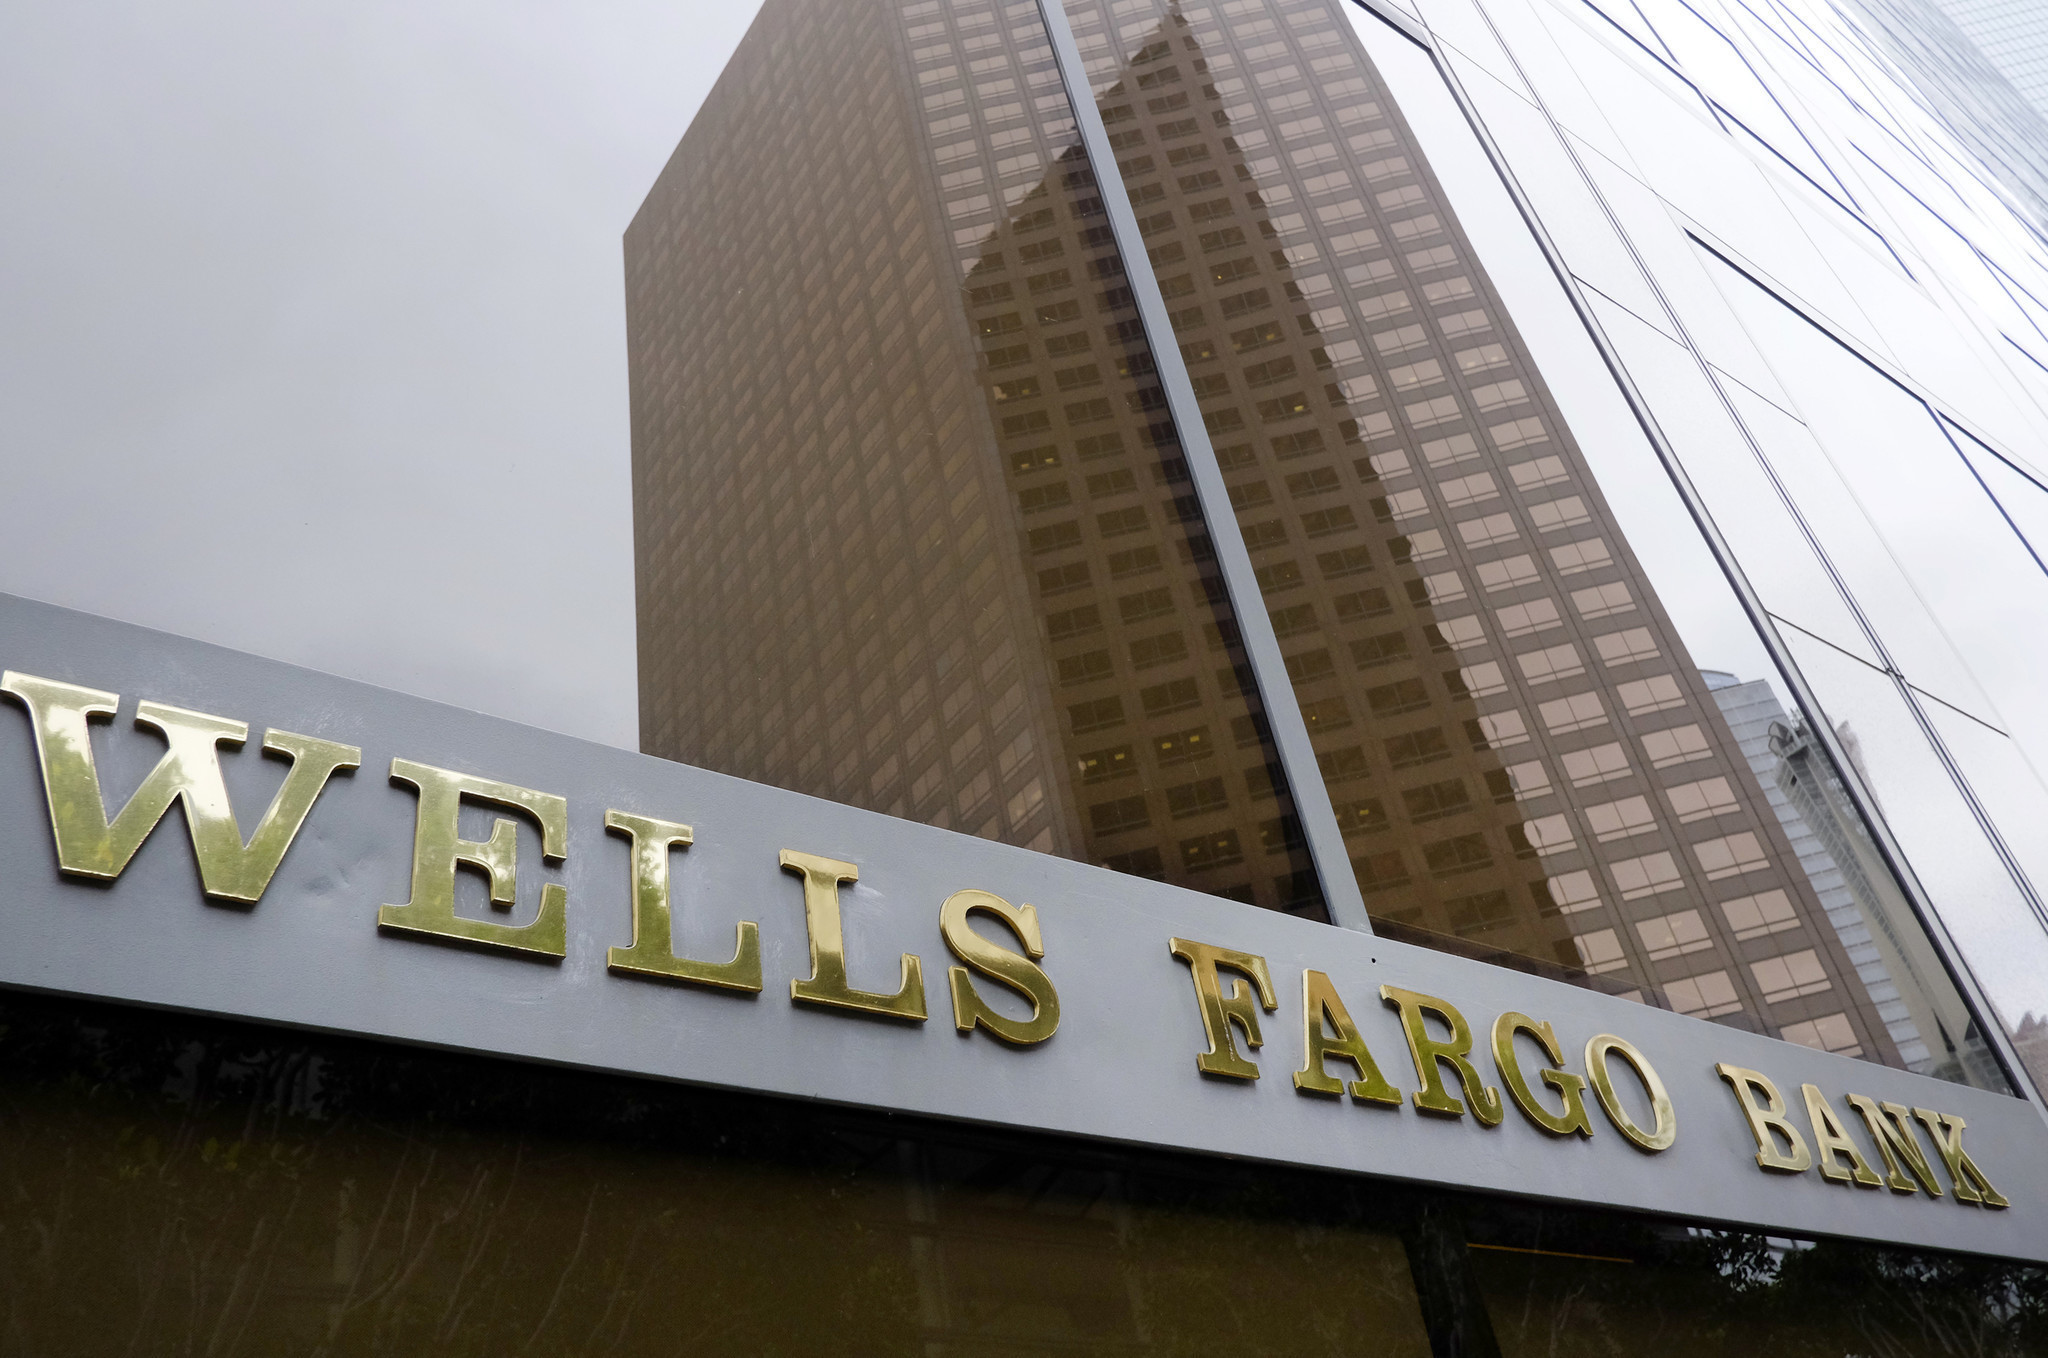 Dc5n united states sport in english created at 2017 06 16 1917 wells fargo is facing allegations of a new scandal this time involving its treatment of mortgage borrowers in bankruptcy some of the borrowers allege that fandeluxe Image collections